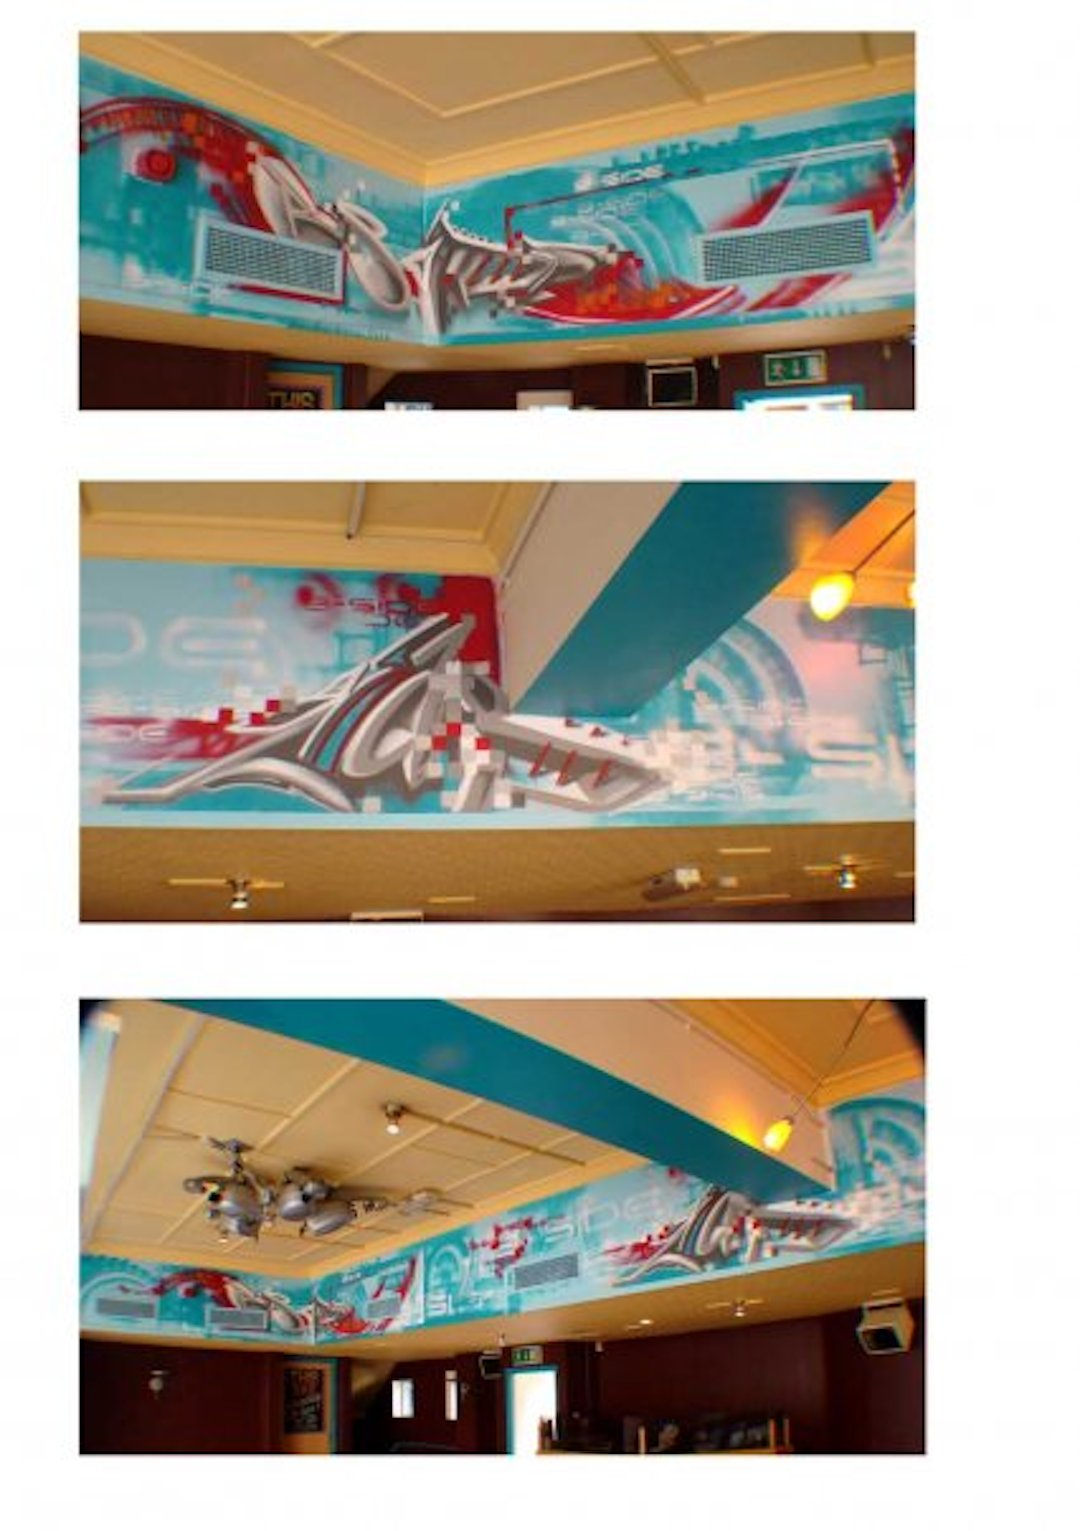 venue-graffiti-bristol-zase-zasedesign-13